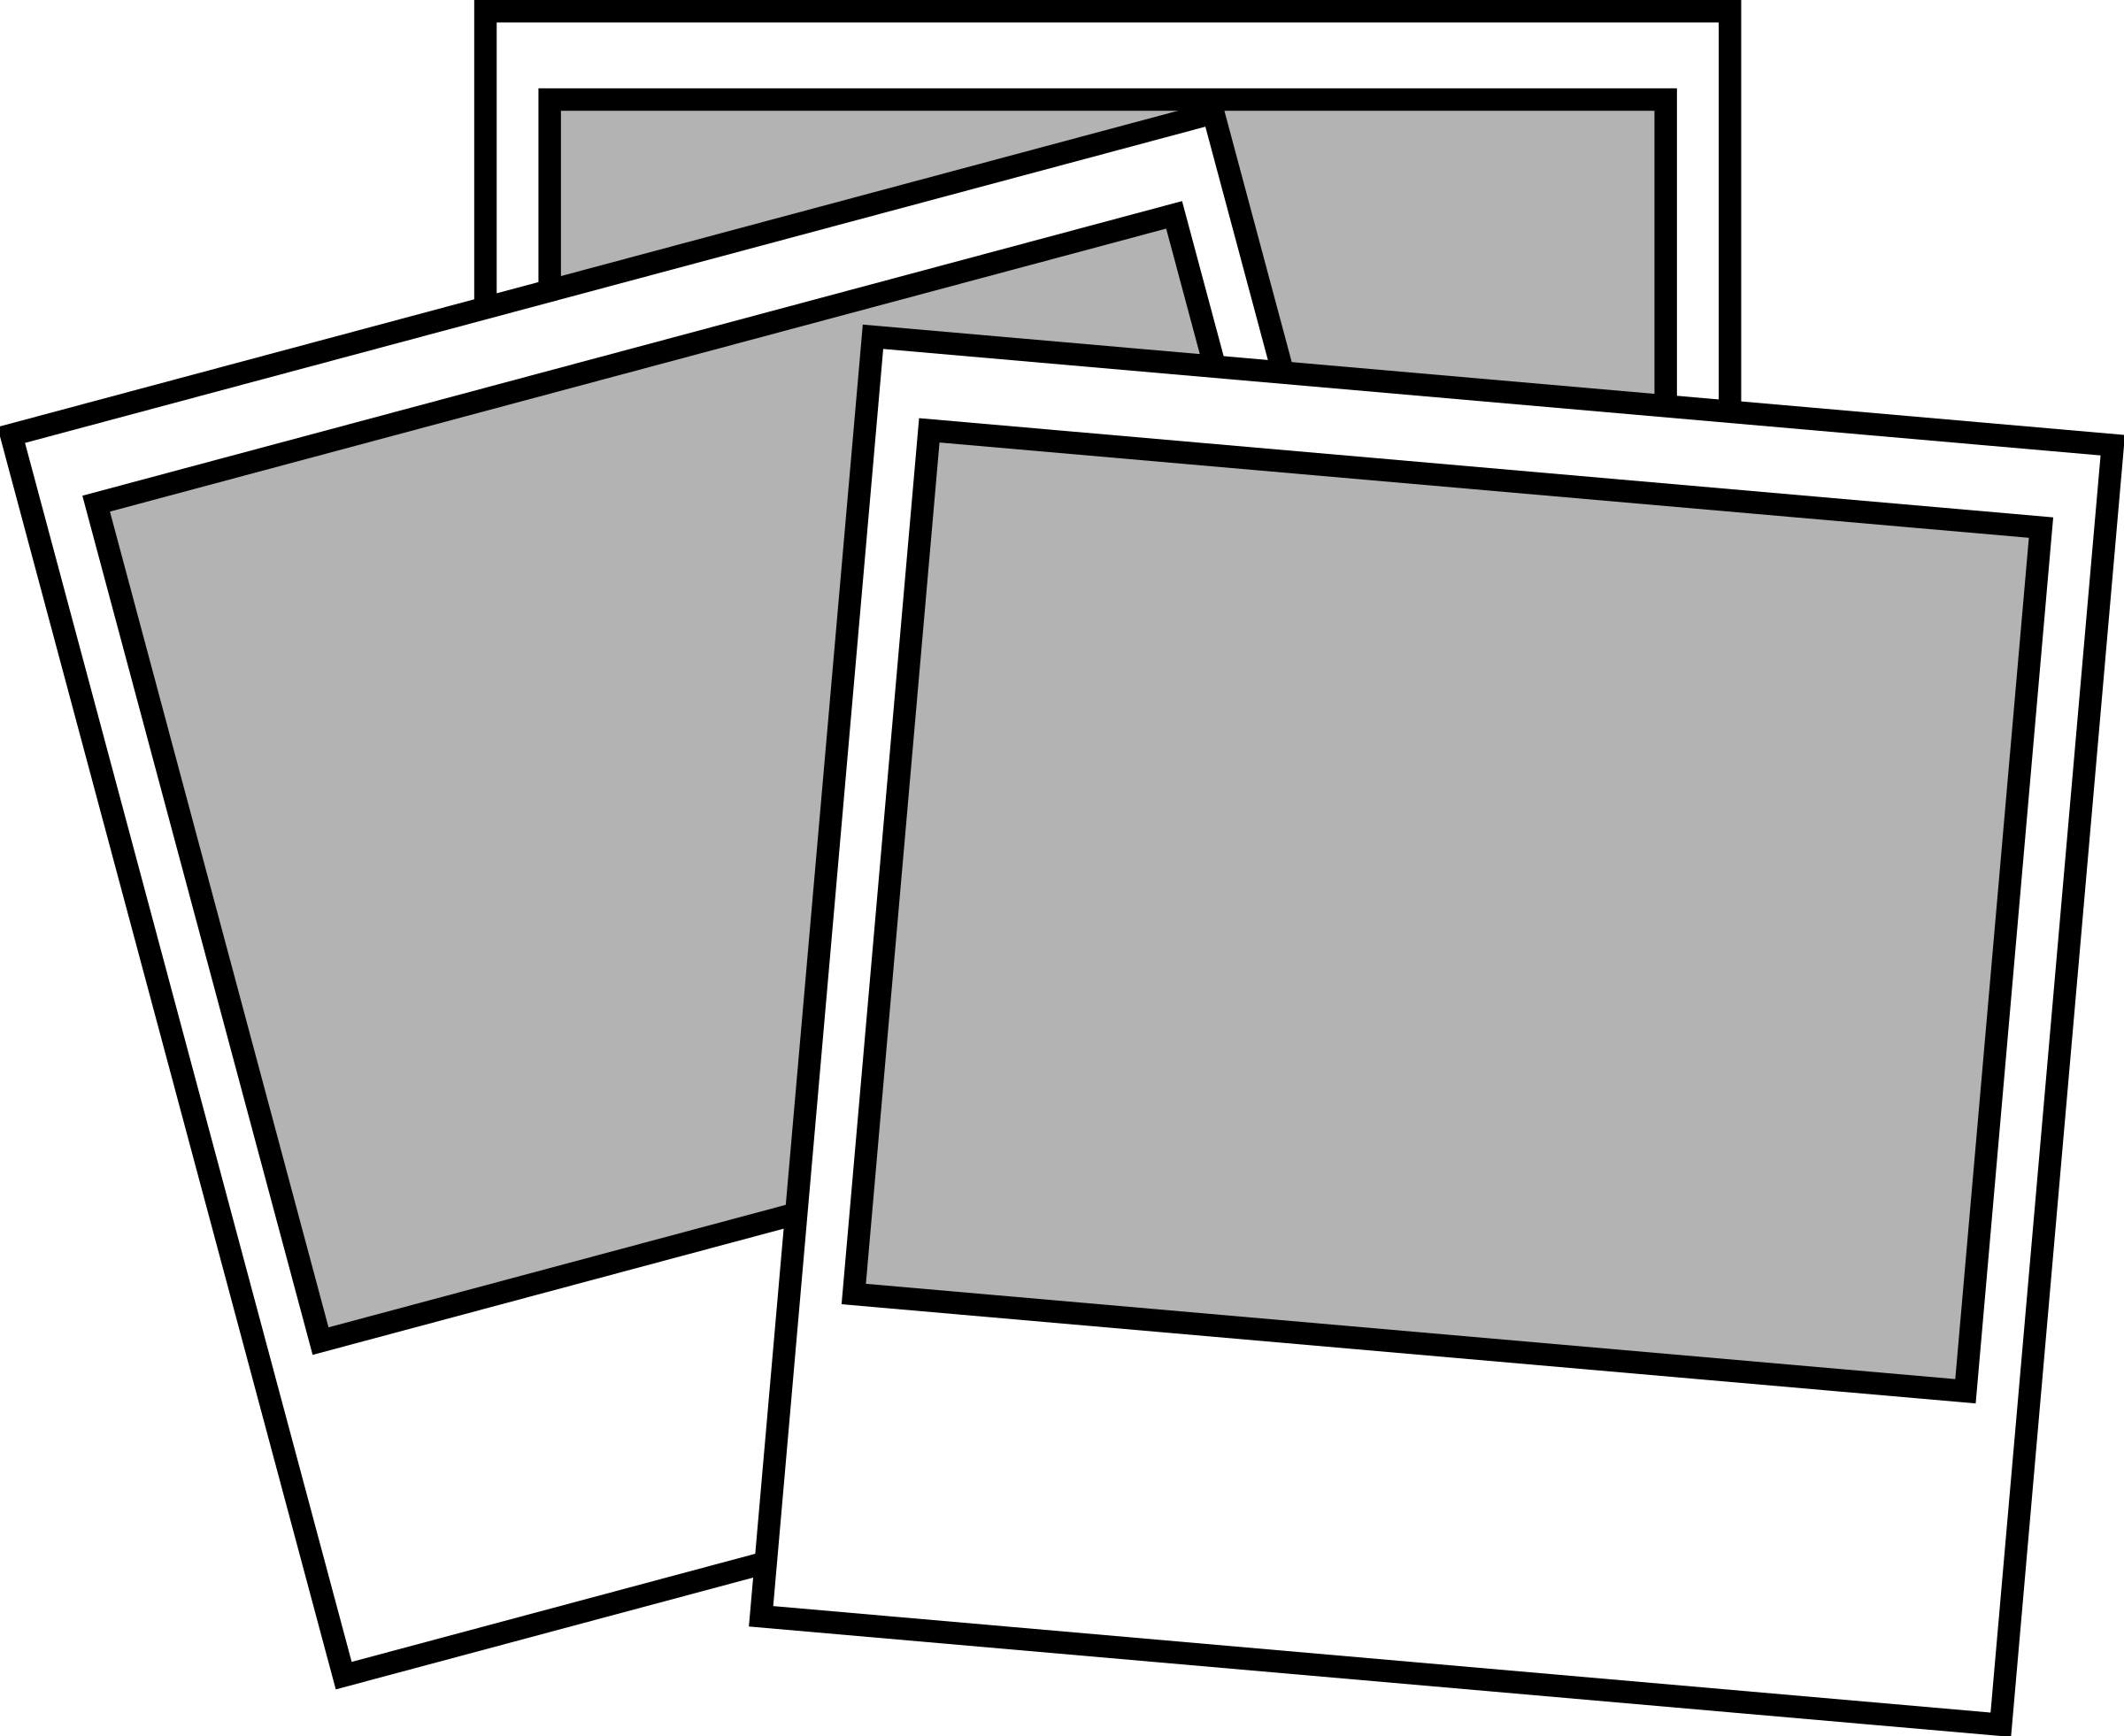 svg library download Entertainment photos line drawing. Photograph clipart